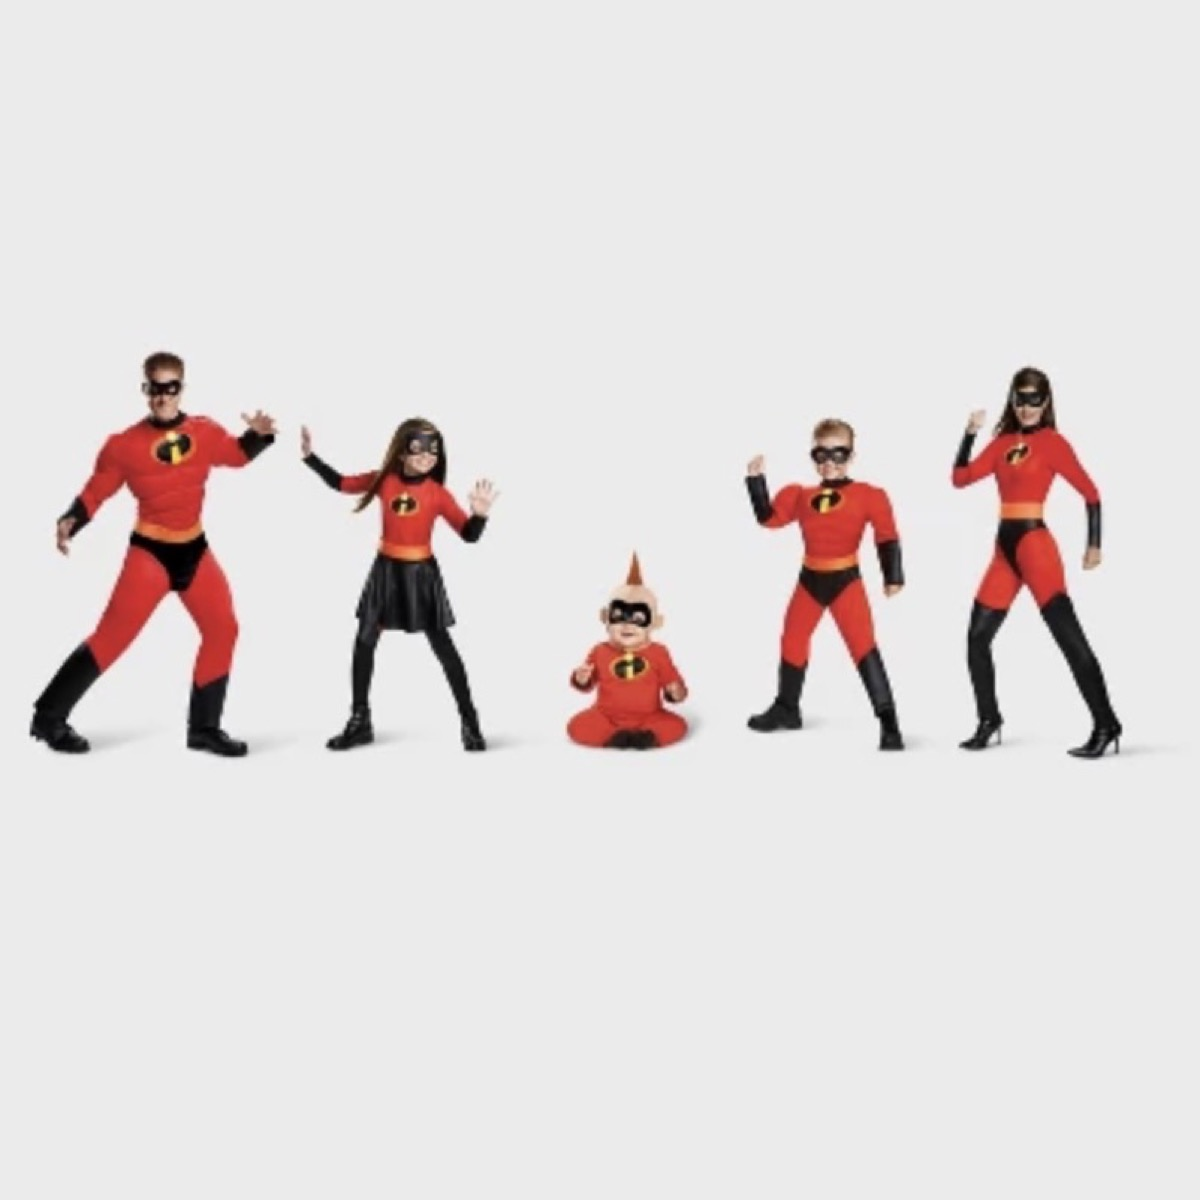 family in incredibles red and black spandex costumes, family halloween costumes, family halloween costumes